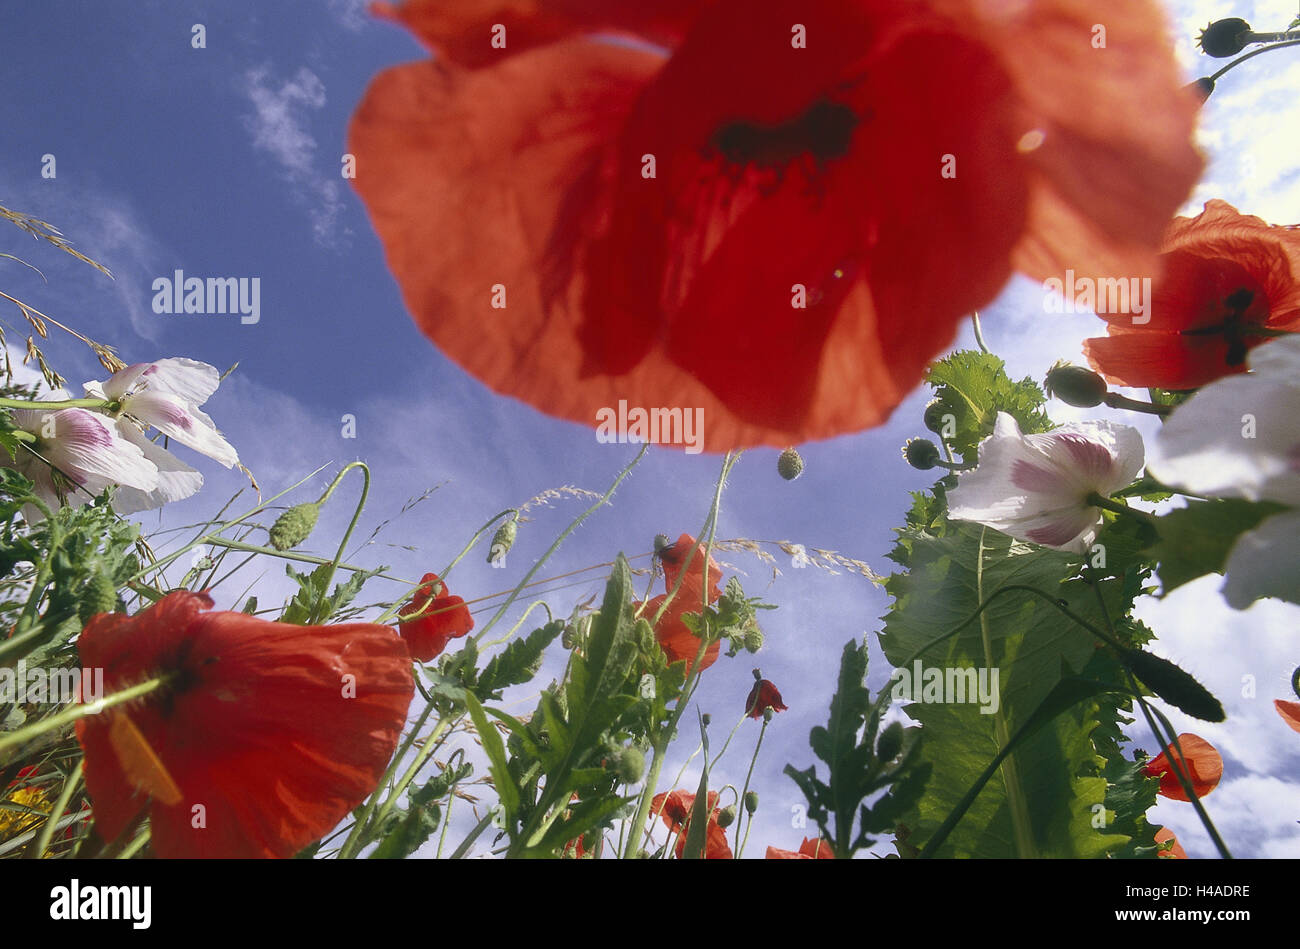 Flower meadow clap poppy seed sky perspective nature botany flower meadow clap poppy seed sky perspective nature botany vegetation meadow grass wild flowers poppy seed poppies blossom summer summery mightylinksfo